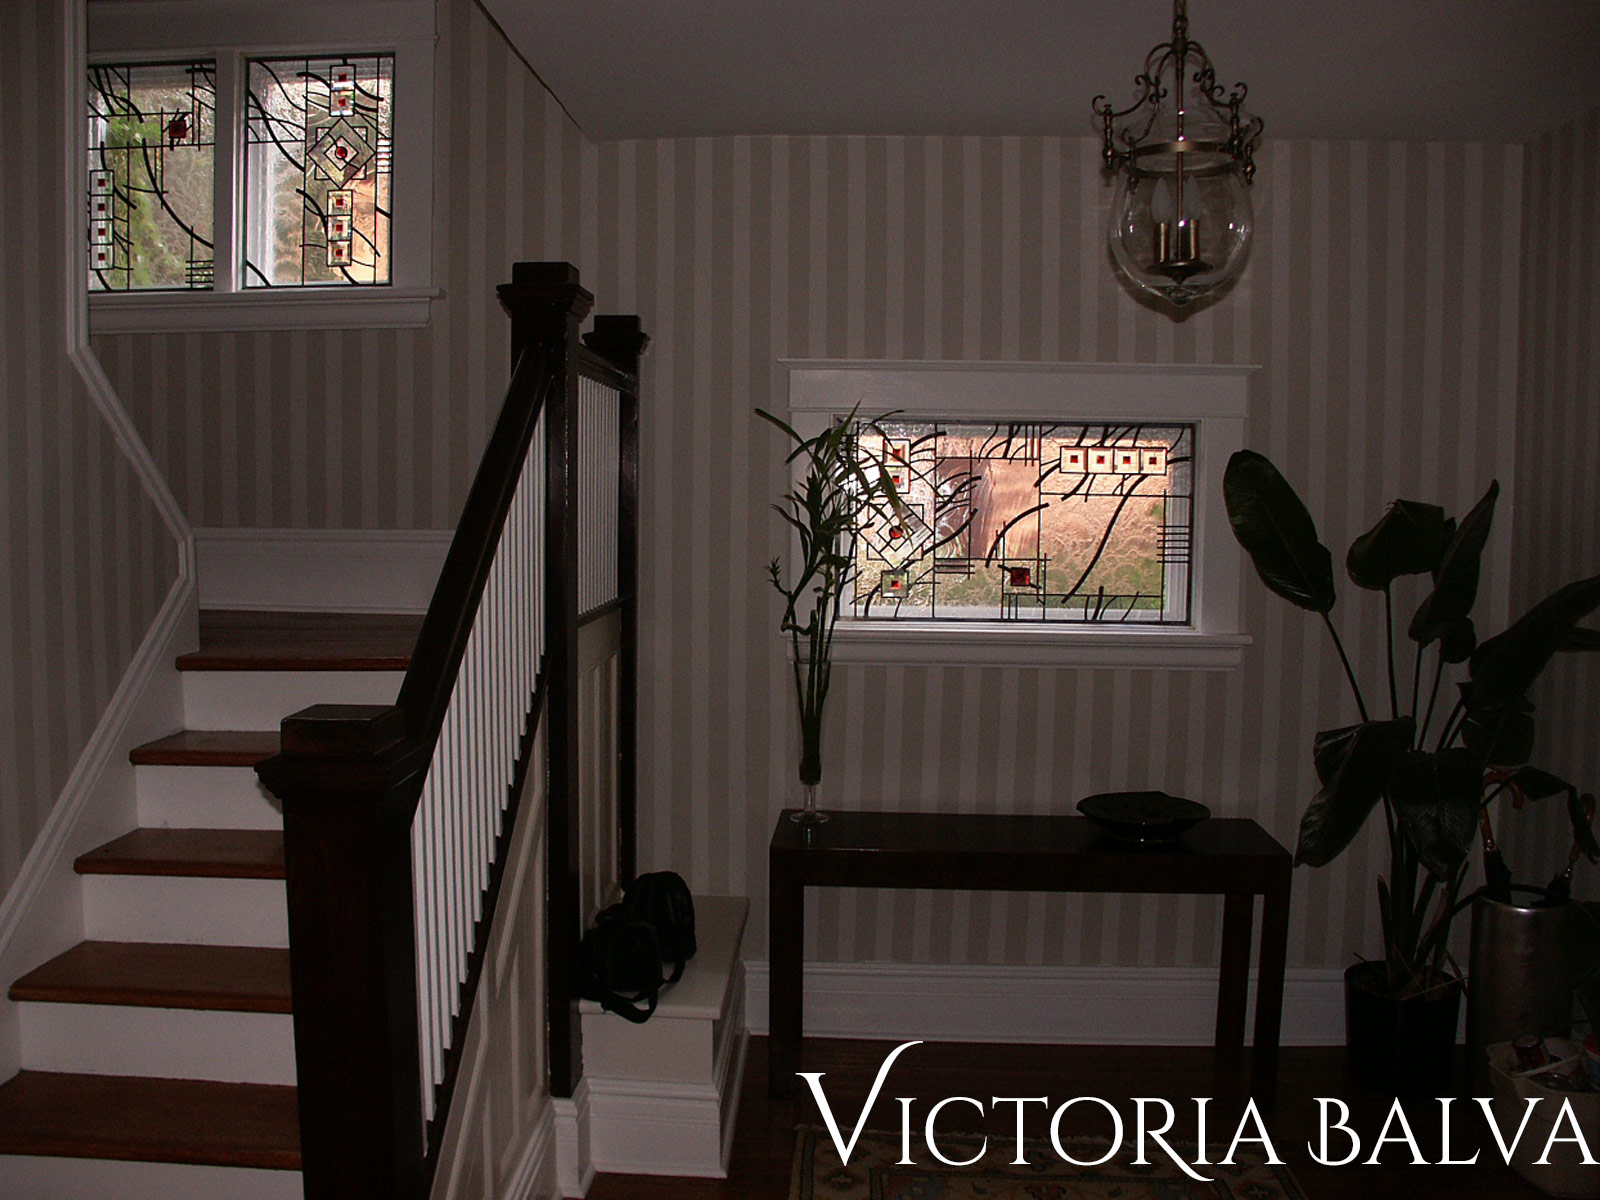 Contemporary innovative stained, beveled and leaded glass foyer hallway and staircase windows with jewels and beveled glass